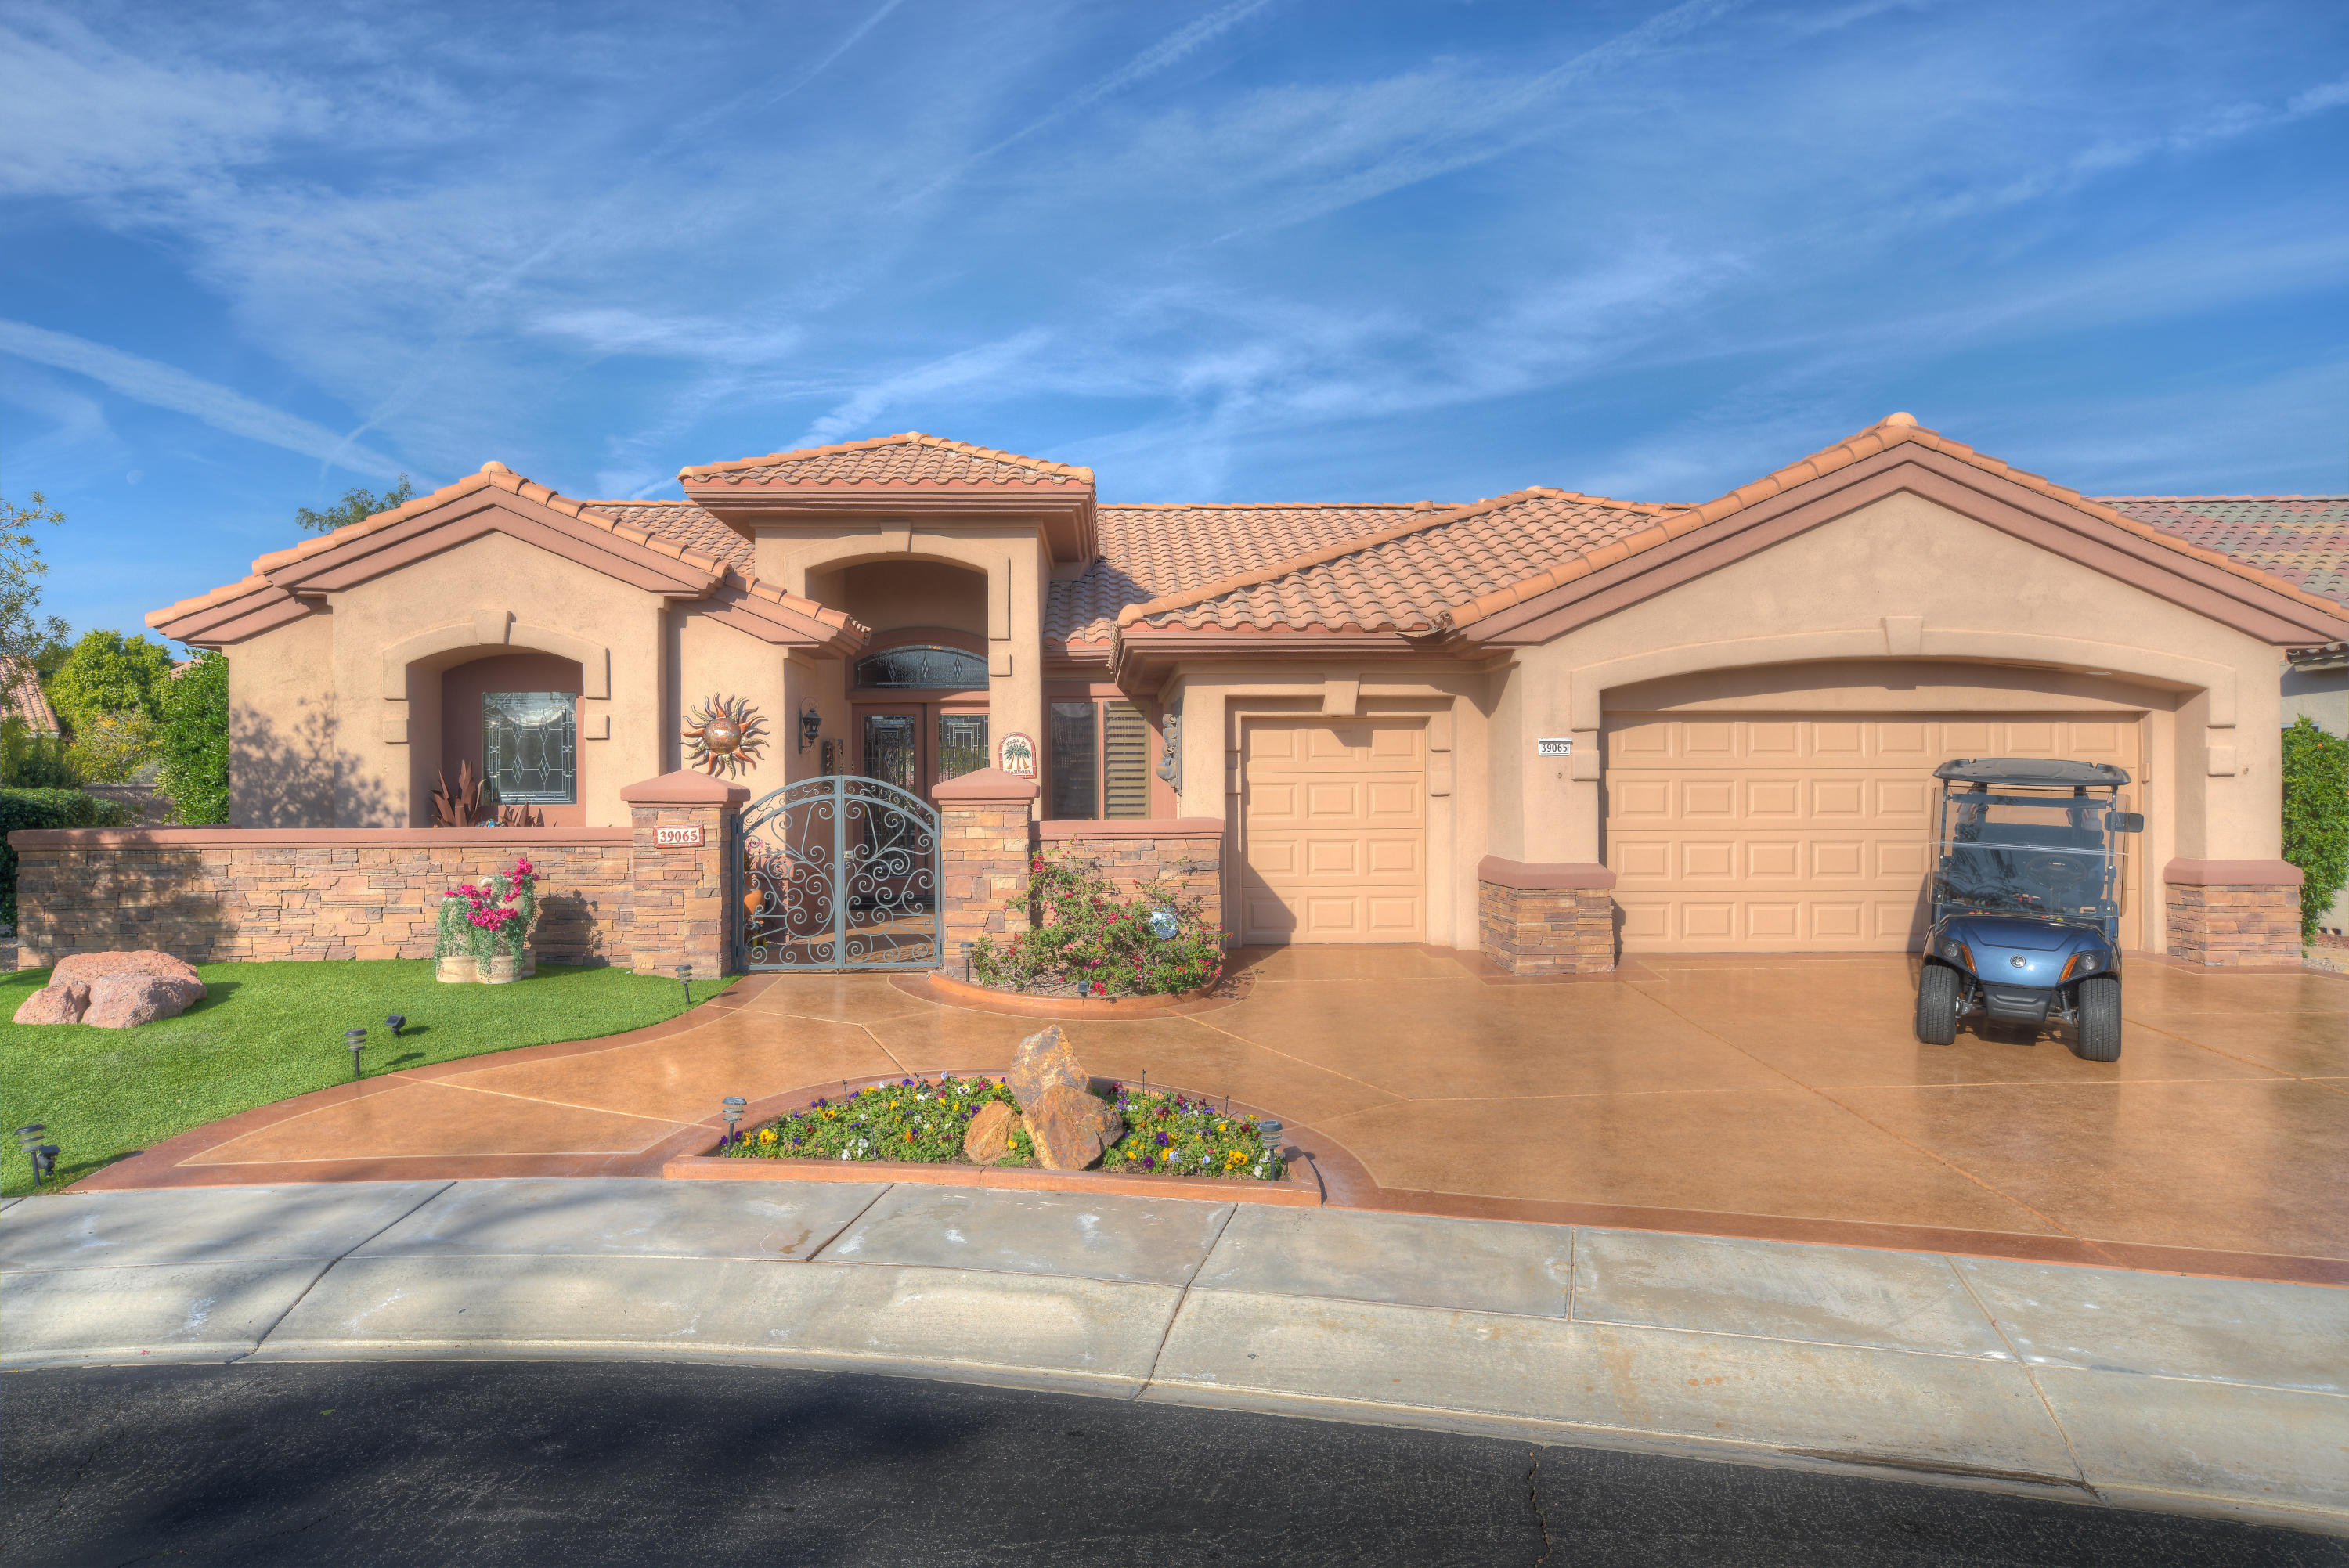 Photo of 39065 Tiffany Circle, Palm Desert, CA 92211